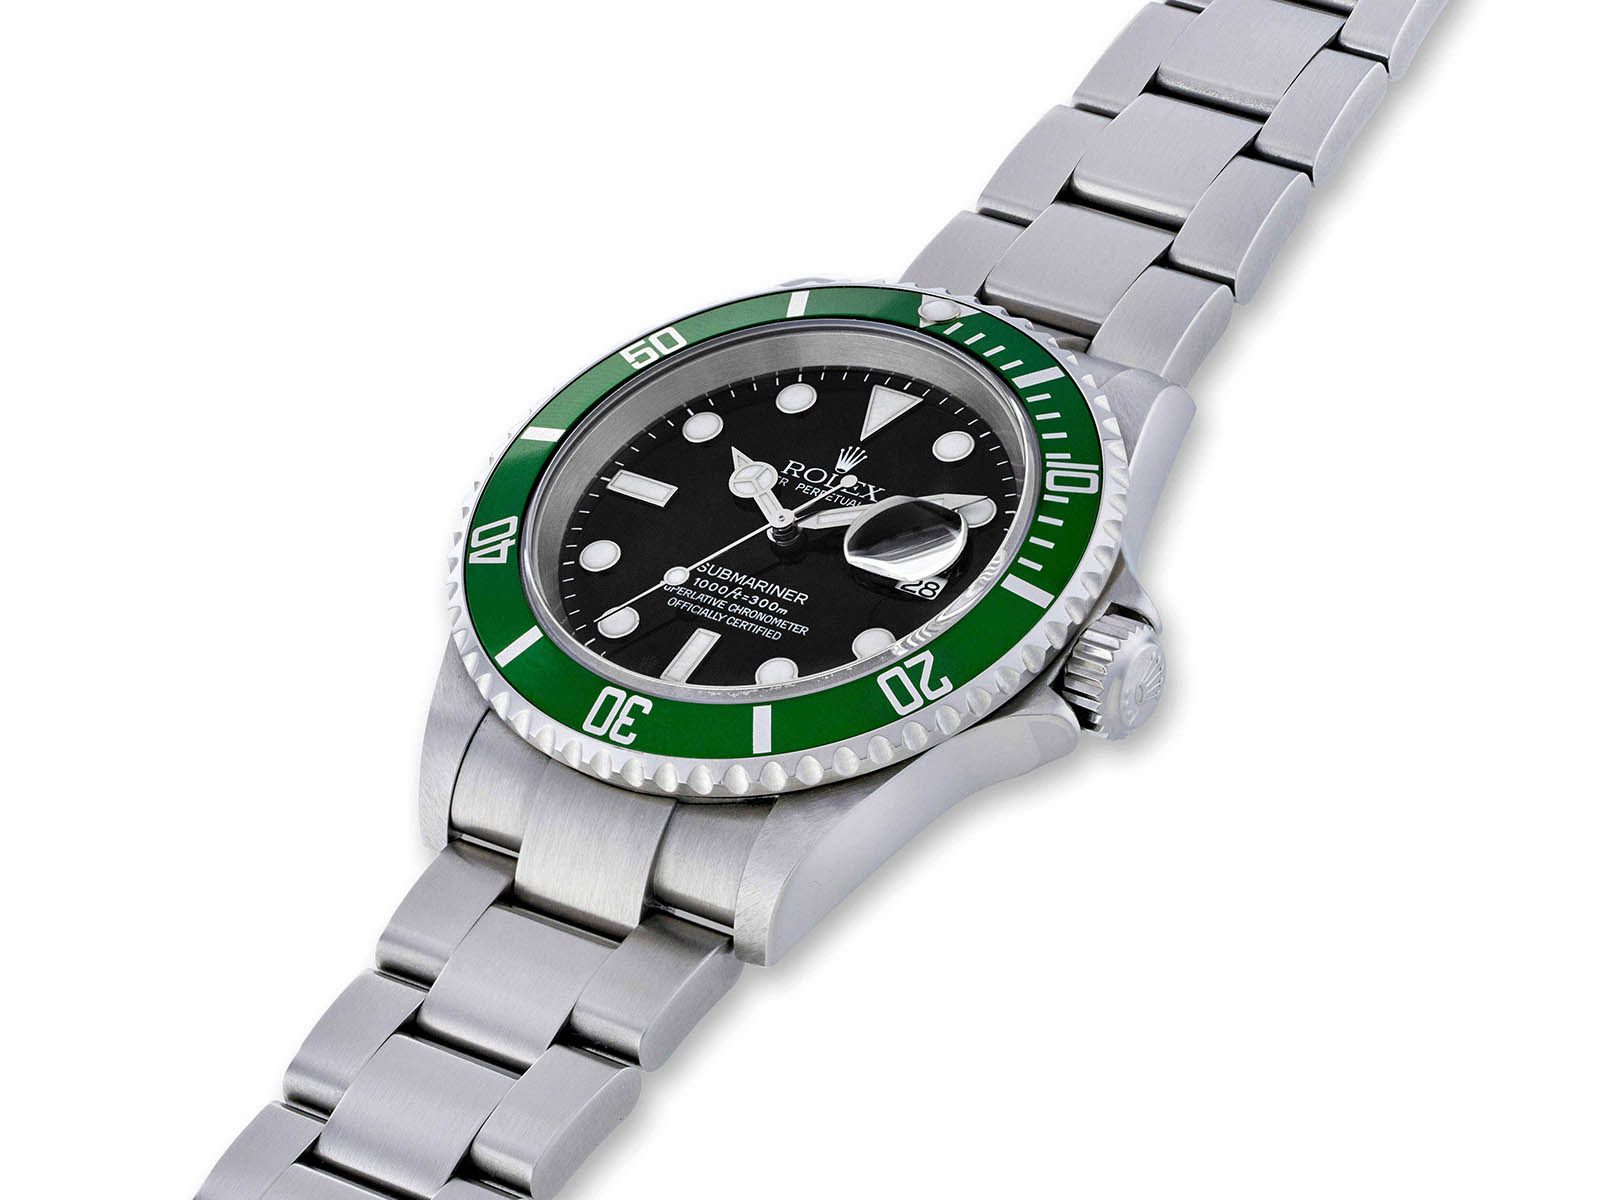 16610lv-rolex-50th-anniversary-submariner.jpg